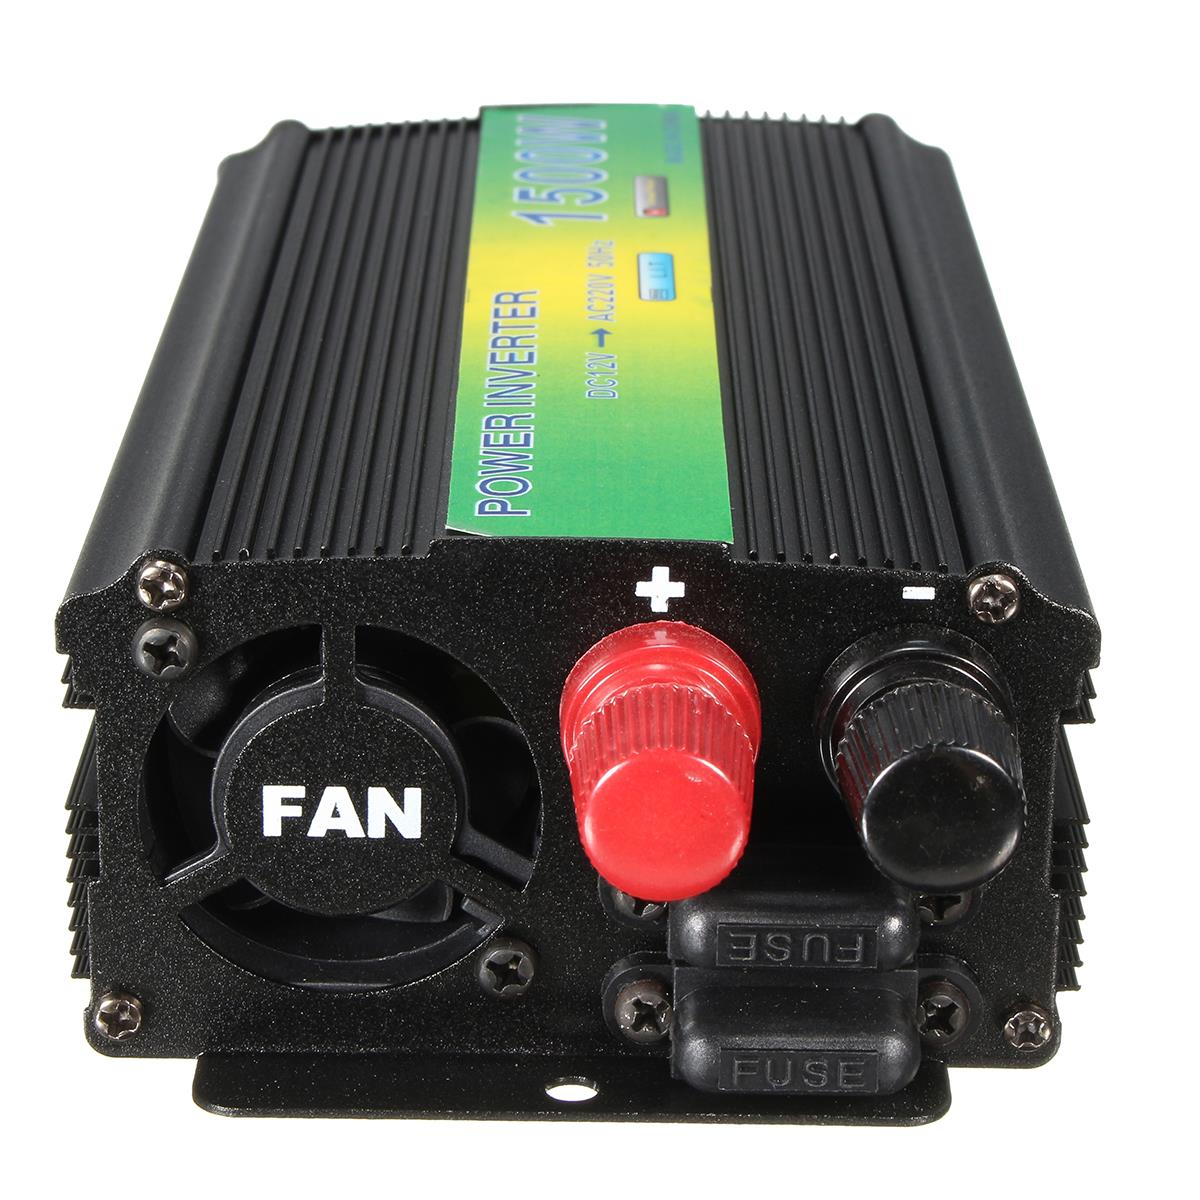 1500W Power Inverter DC 12V To AC 220V Modified Pure Sine Wave Converter USB Charger new acehe 1500w car dc 12v to ac 220v overload protection reverse polarity protection power inverter charger converter